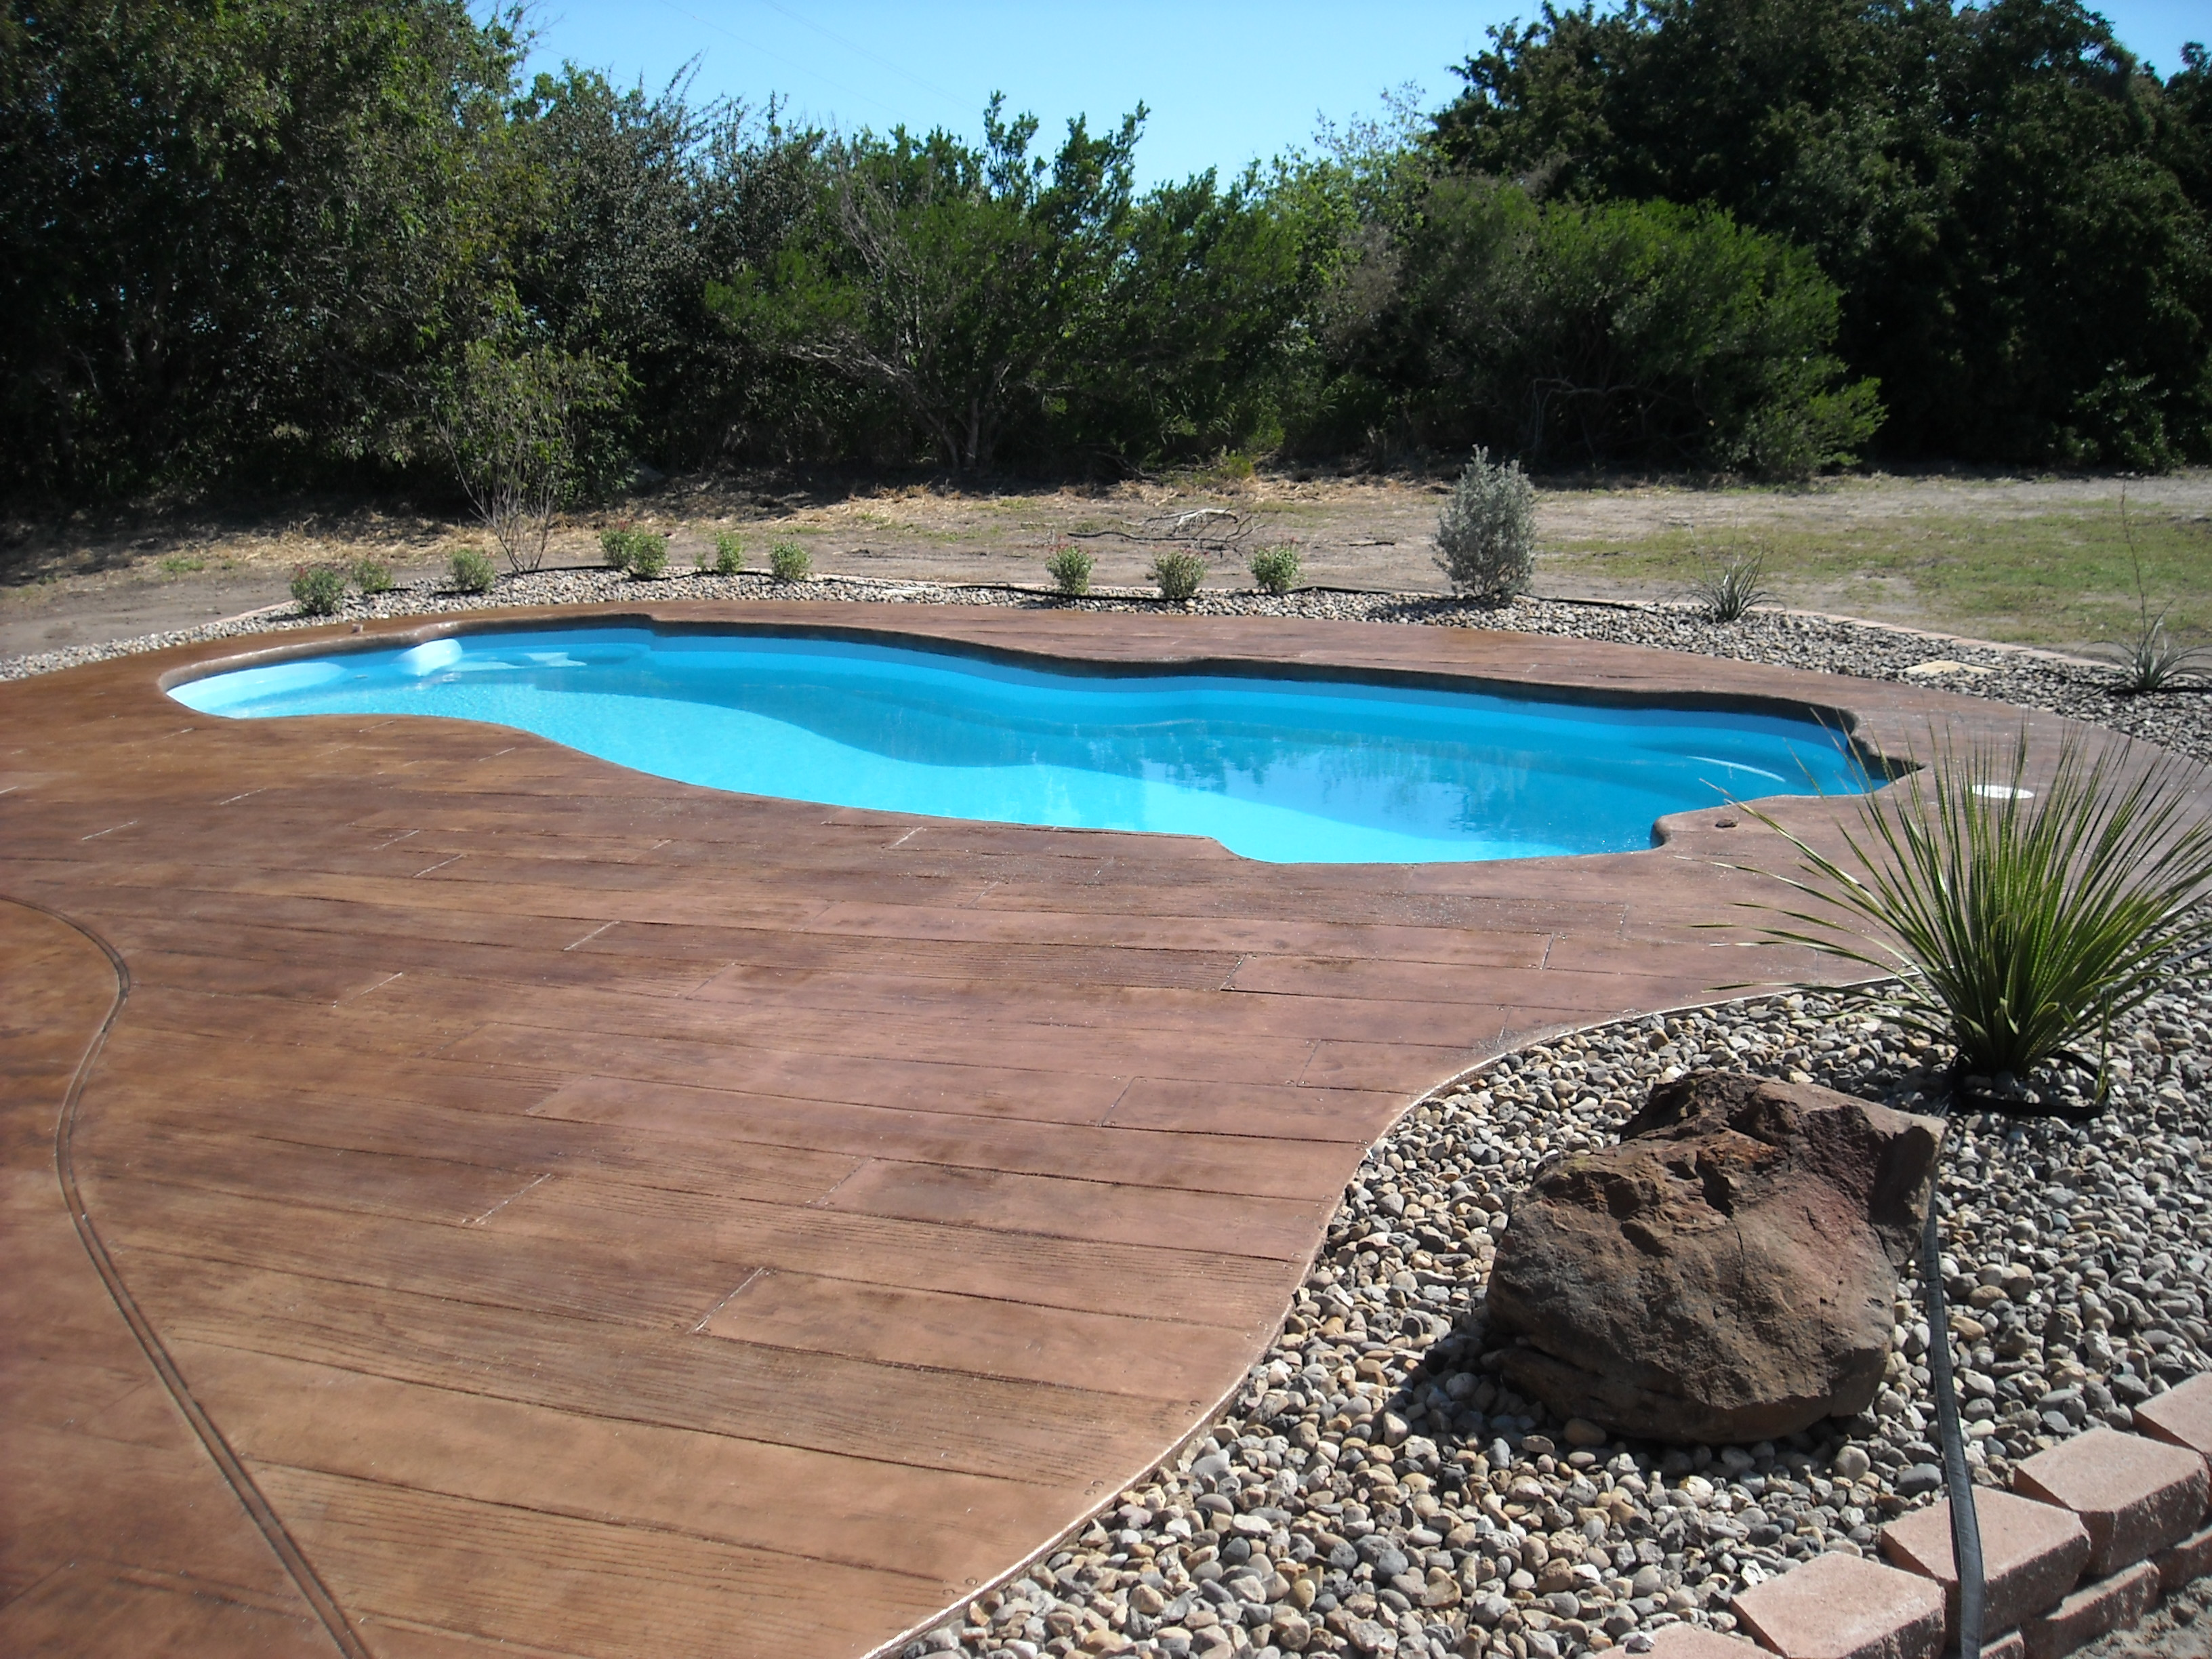 Backyard swimming pool in Corpus Christi with design concrete around it.